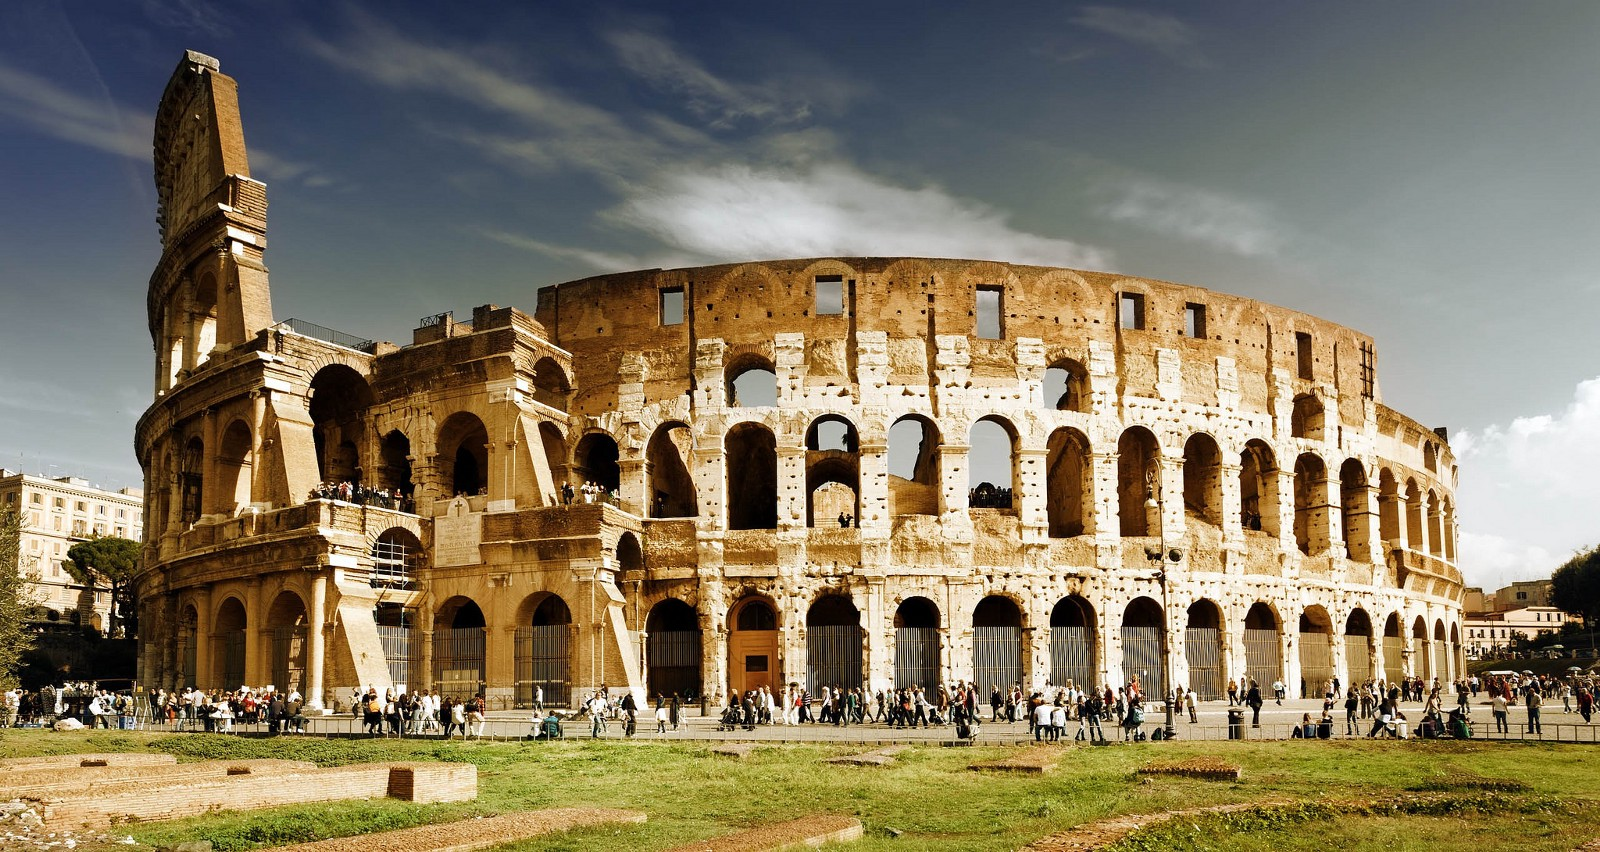 They say Rome wasn\u0027t built in a day but the influence of its architecture has lasted for centuries. & HOW ROMAN ARCHITECTURE INFLUENCED MODERN ARCHITECTURE